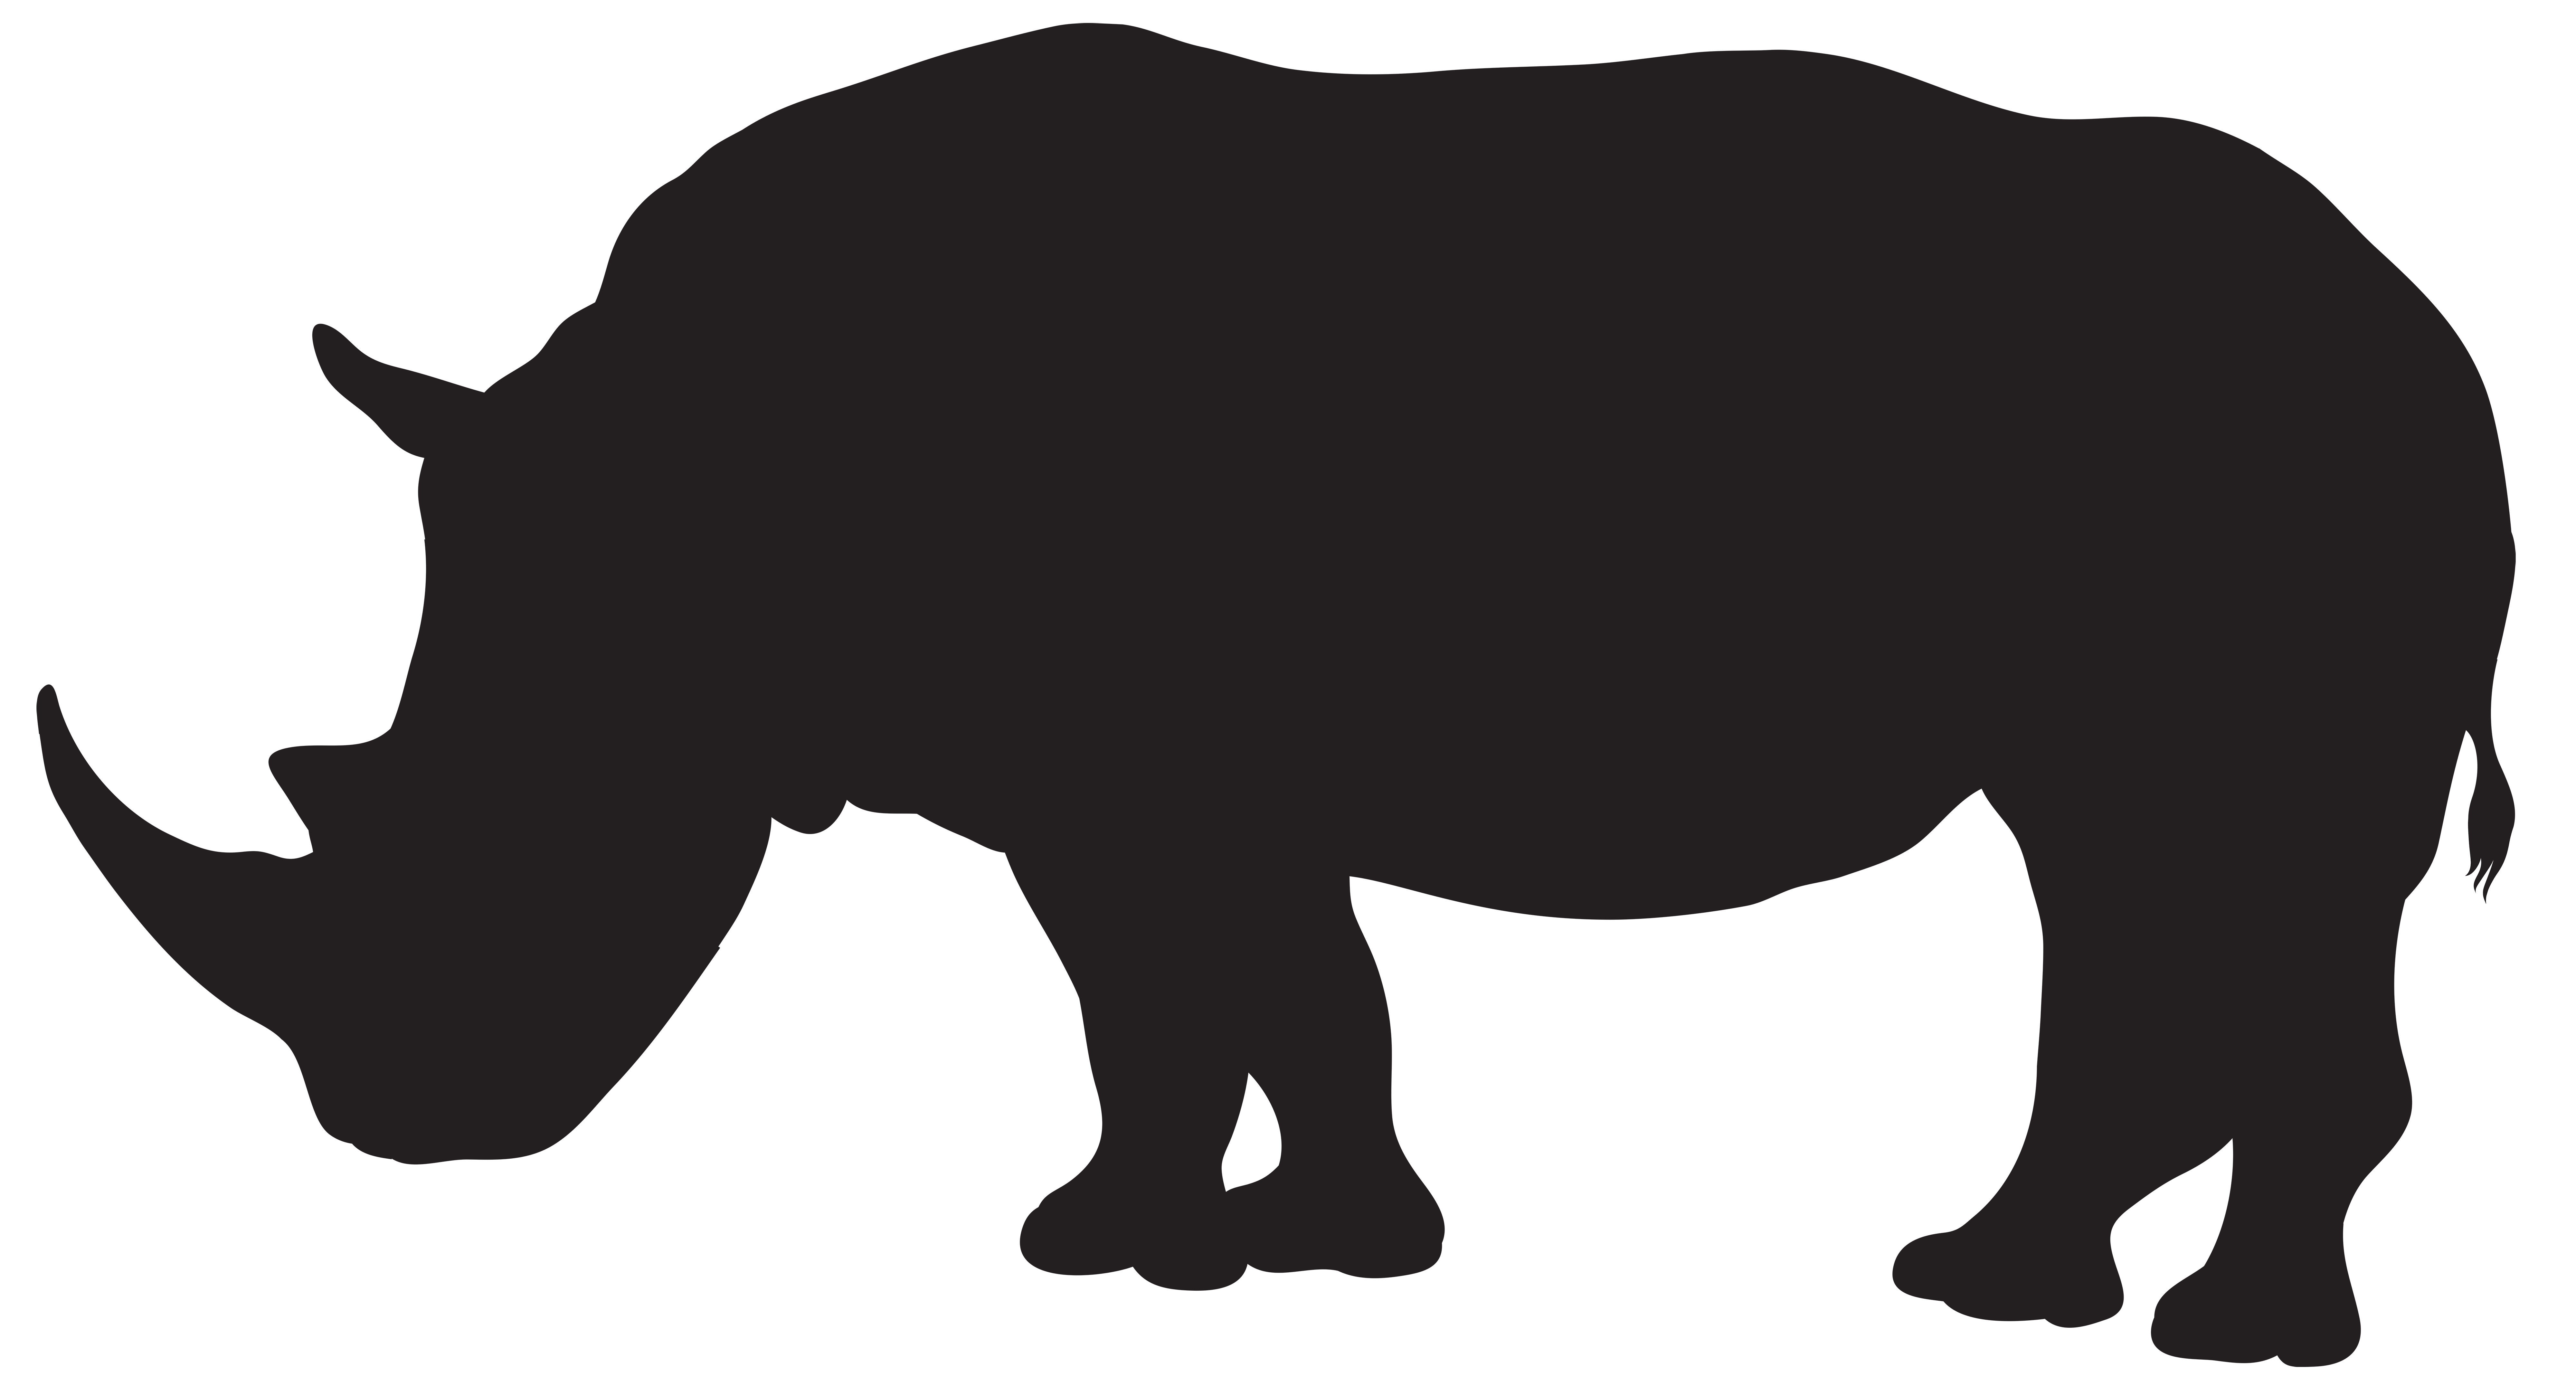 picture download Rhino Silhouette PNG Transparent Clip Art Image